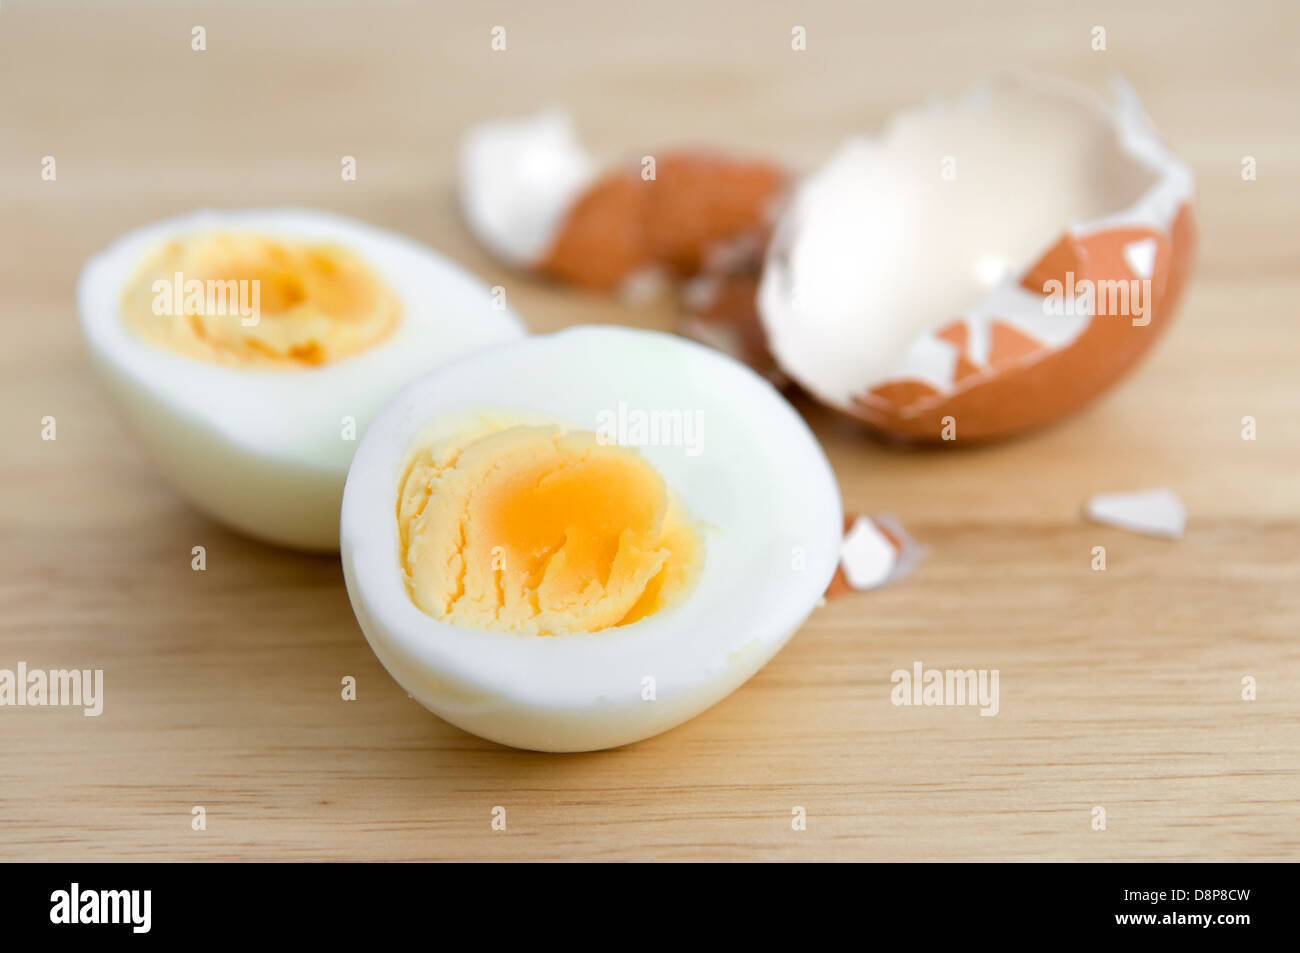 Hard boiled egg cut in half with egg shell on wooden chopping